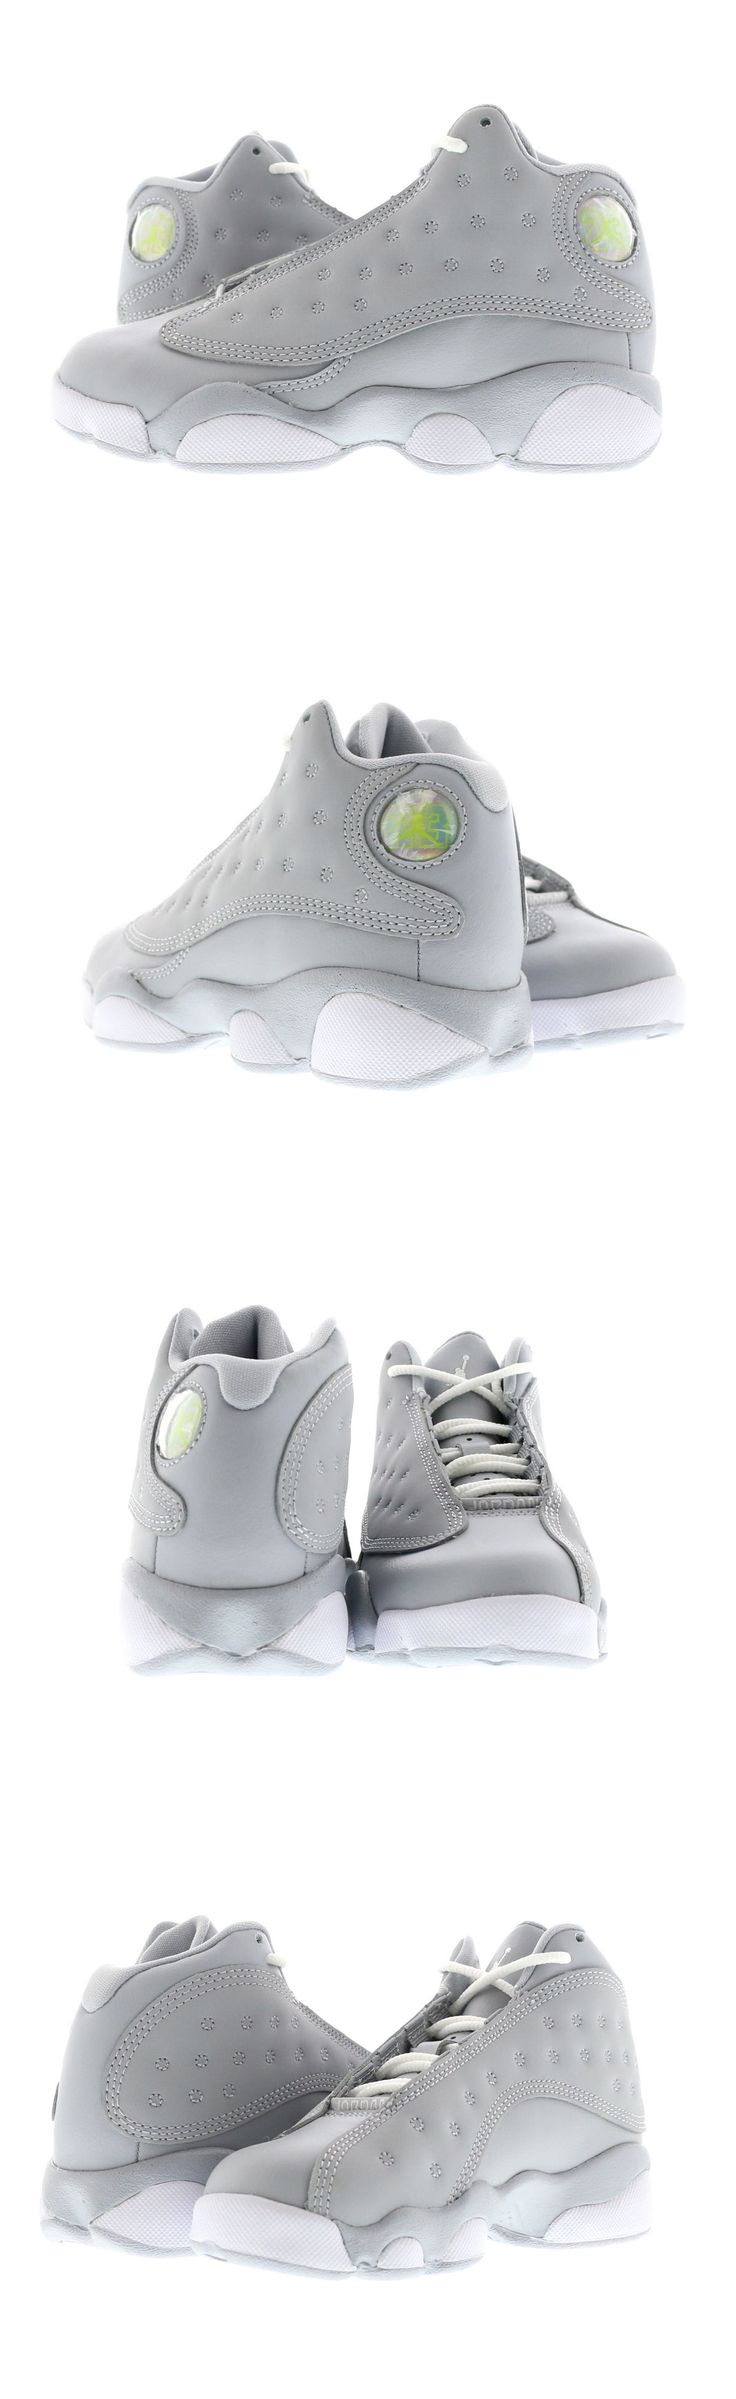 Boys Shoes 57929: Kids (Ps) Air Jordan 13 Retro Wolf Grey White-Pink 439669-018 -> BUY IT NOW ONLY: $65 on eBay!